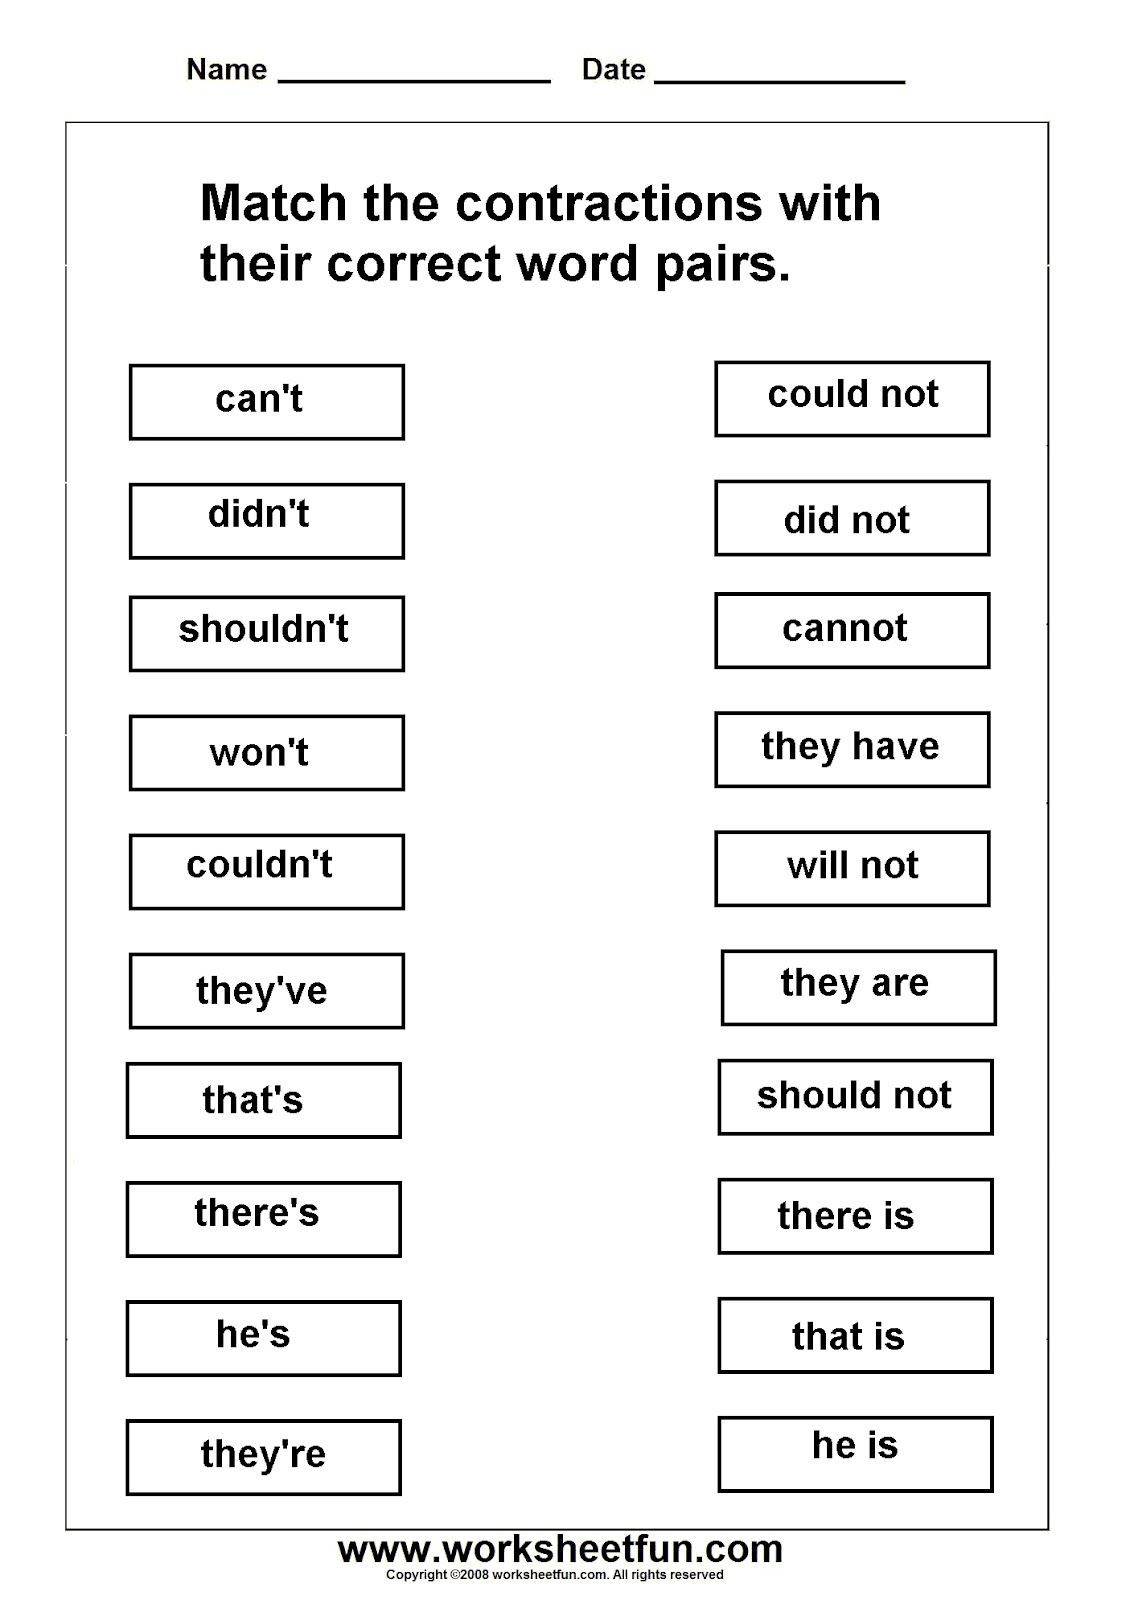 Synonym Worksheet for 2nd Grade Pin by Bolanle Azeez On Project Year 1 In 2020